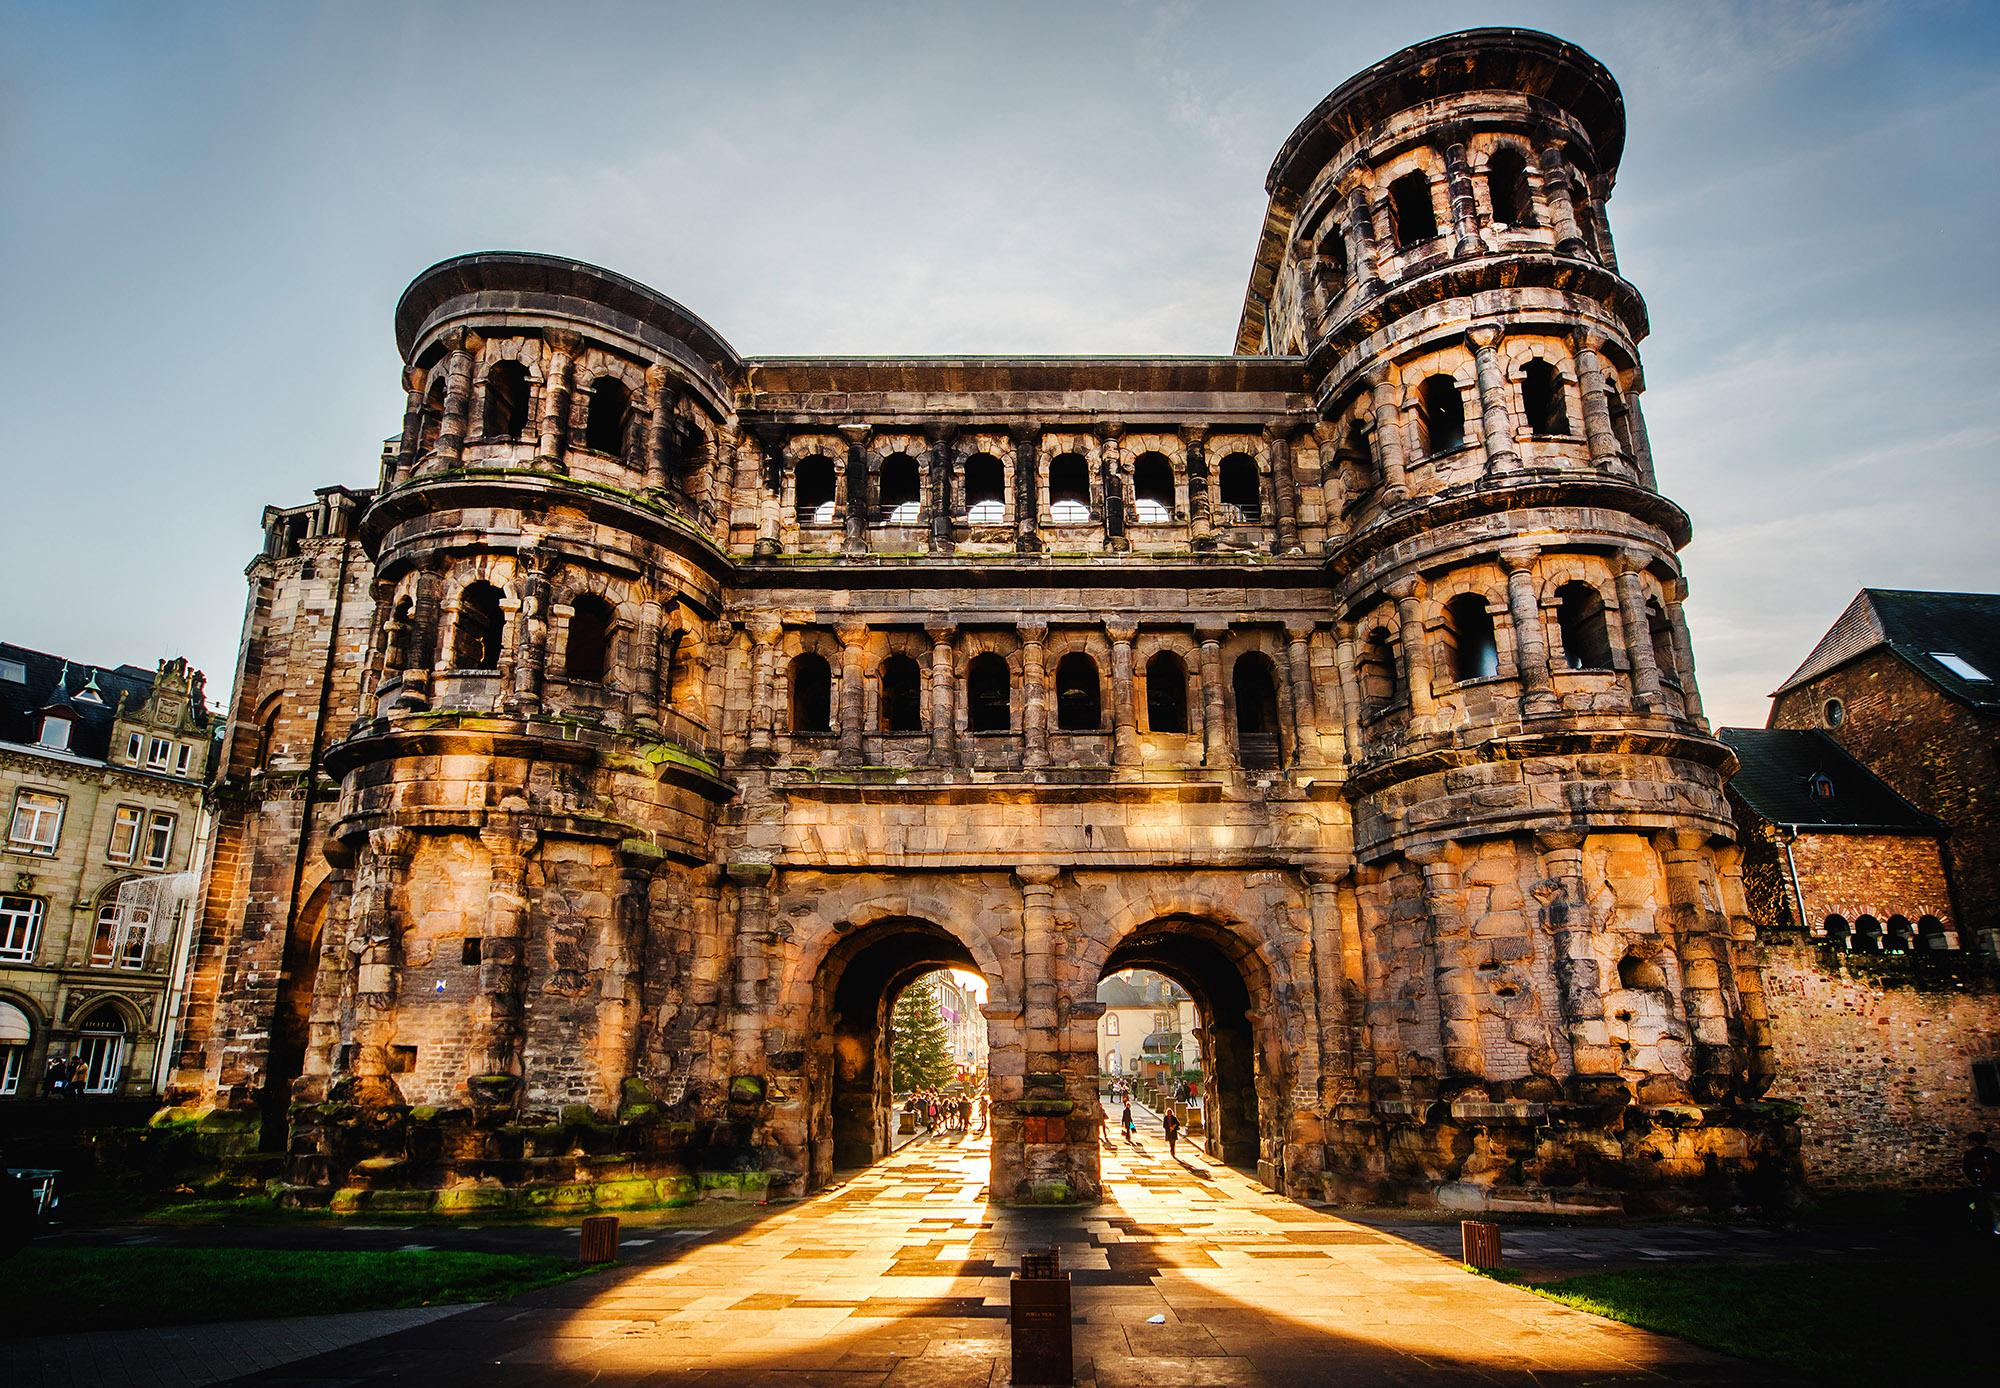 Front view of the Porta Nigra (Black Gate) in Trier, Germany, built by the Romans in 170 AD. – © Alex Tihonovs / Shutterstock.com